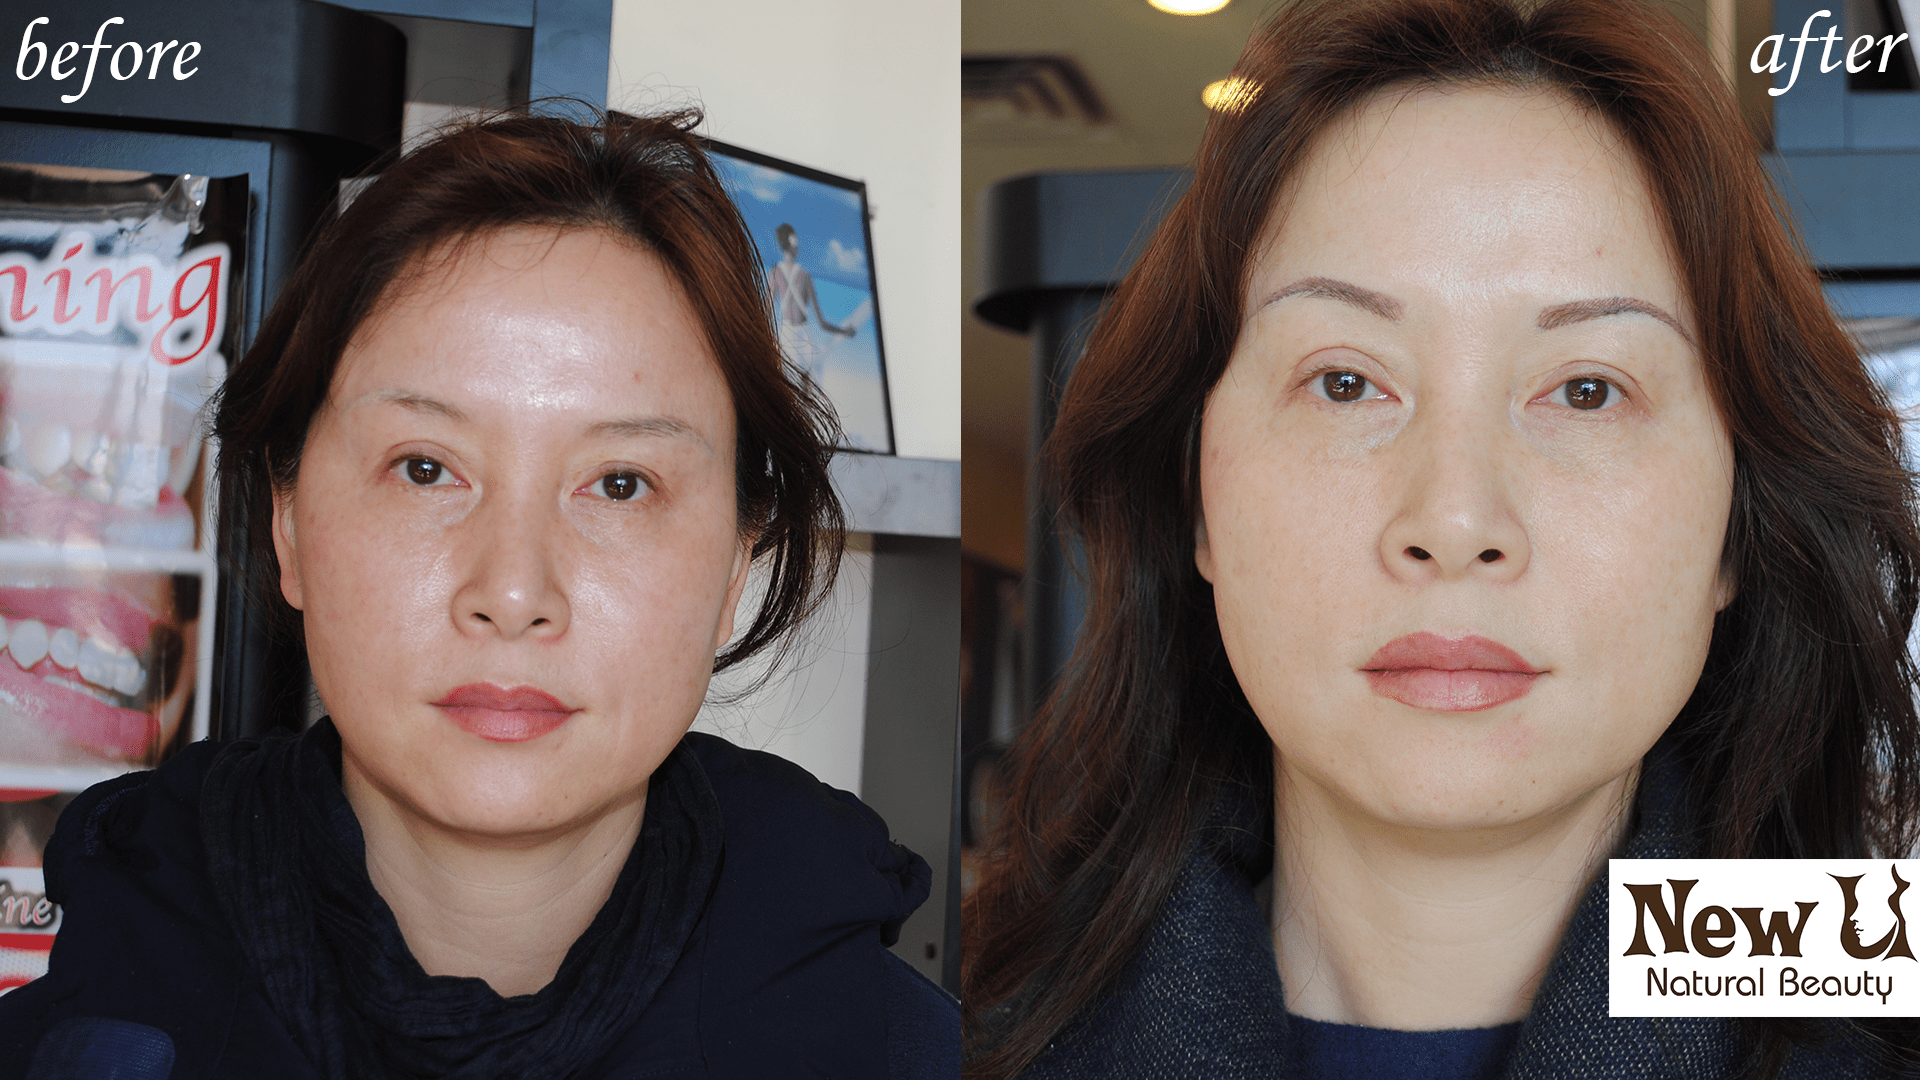 Beyond Botox 3 Las Vegas Before and After